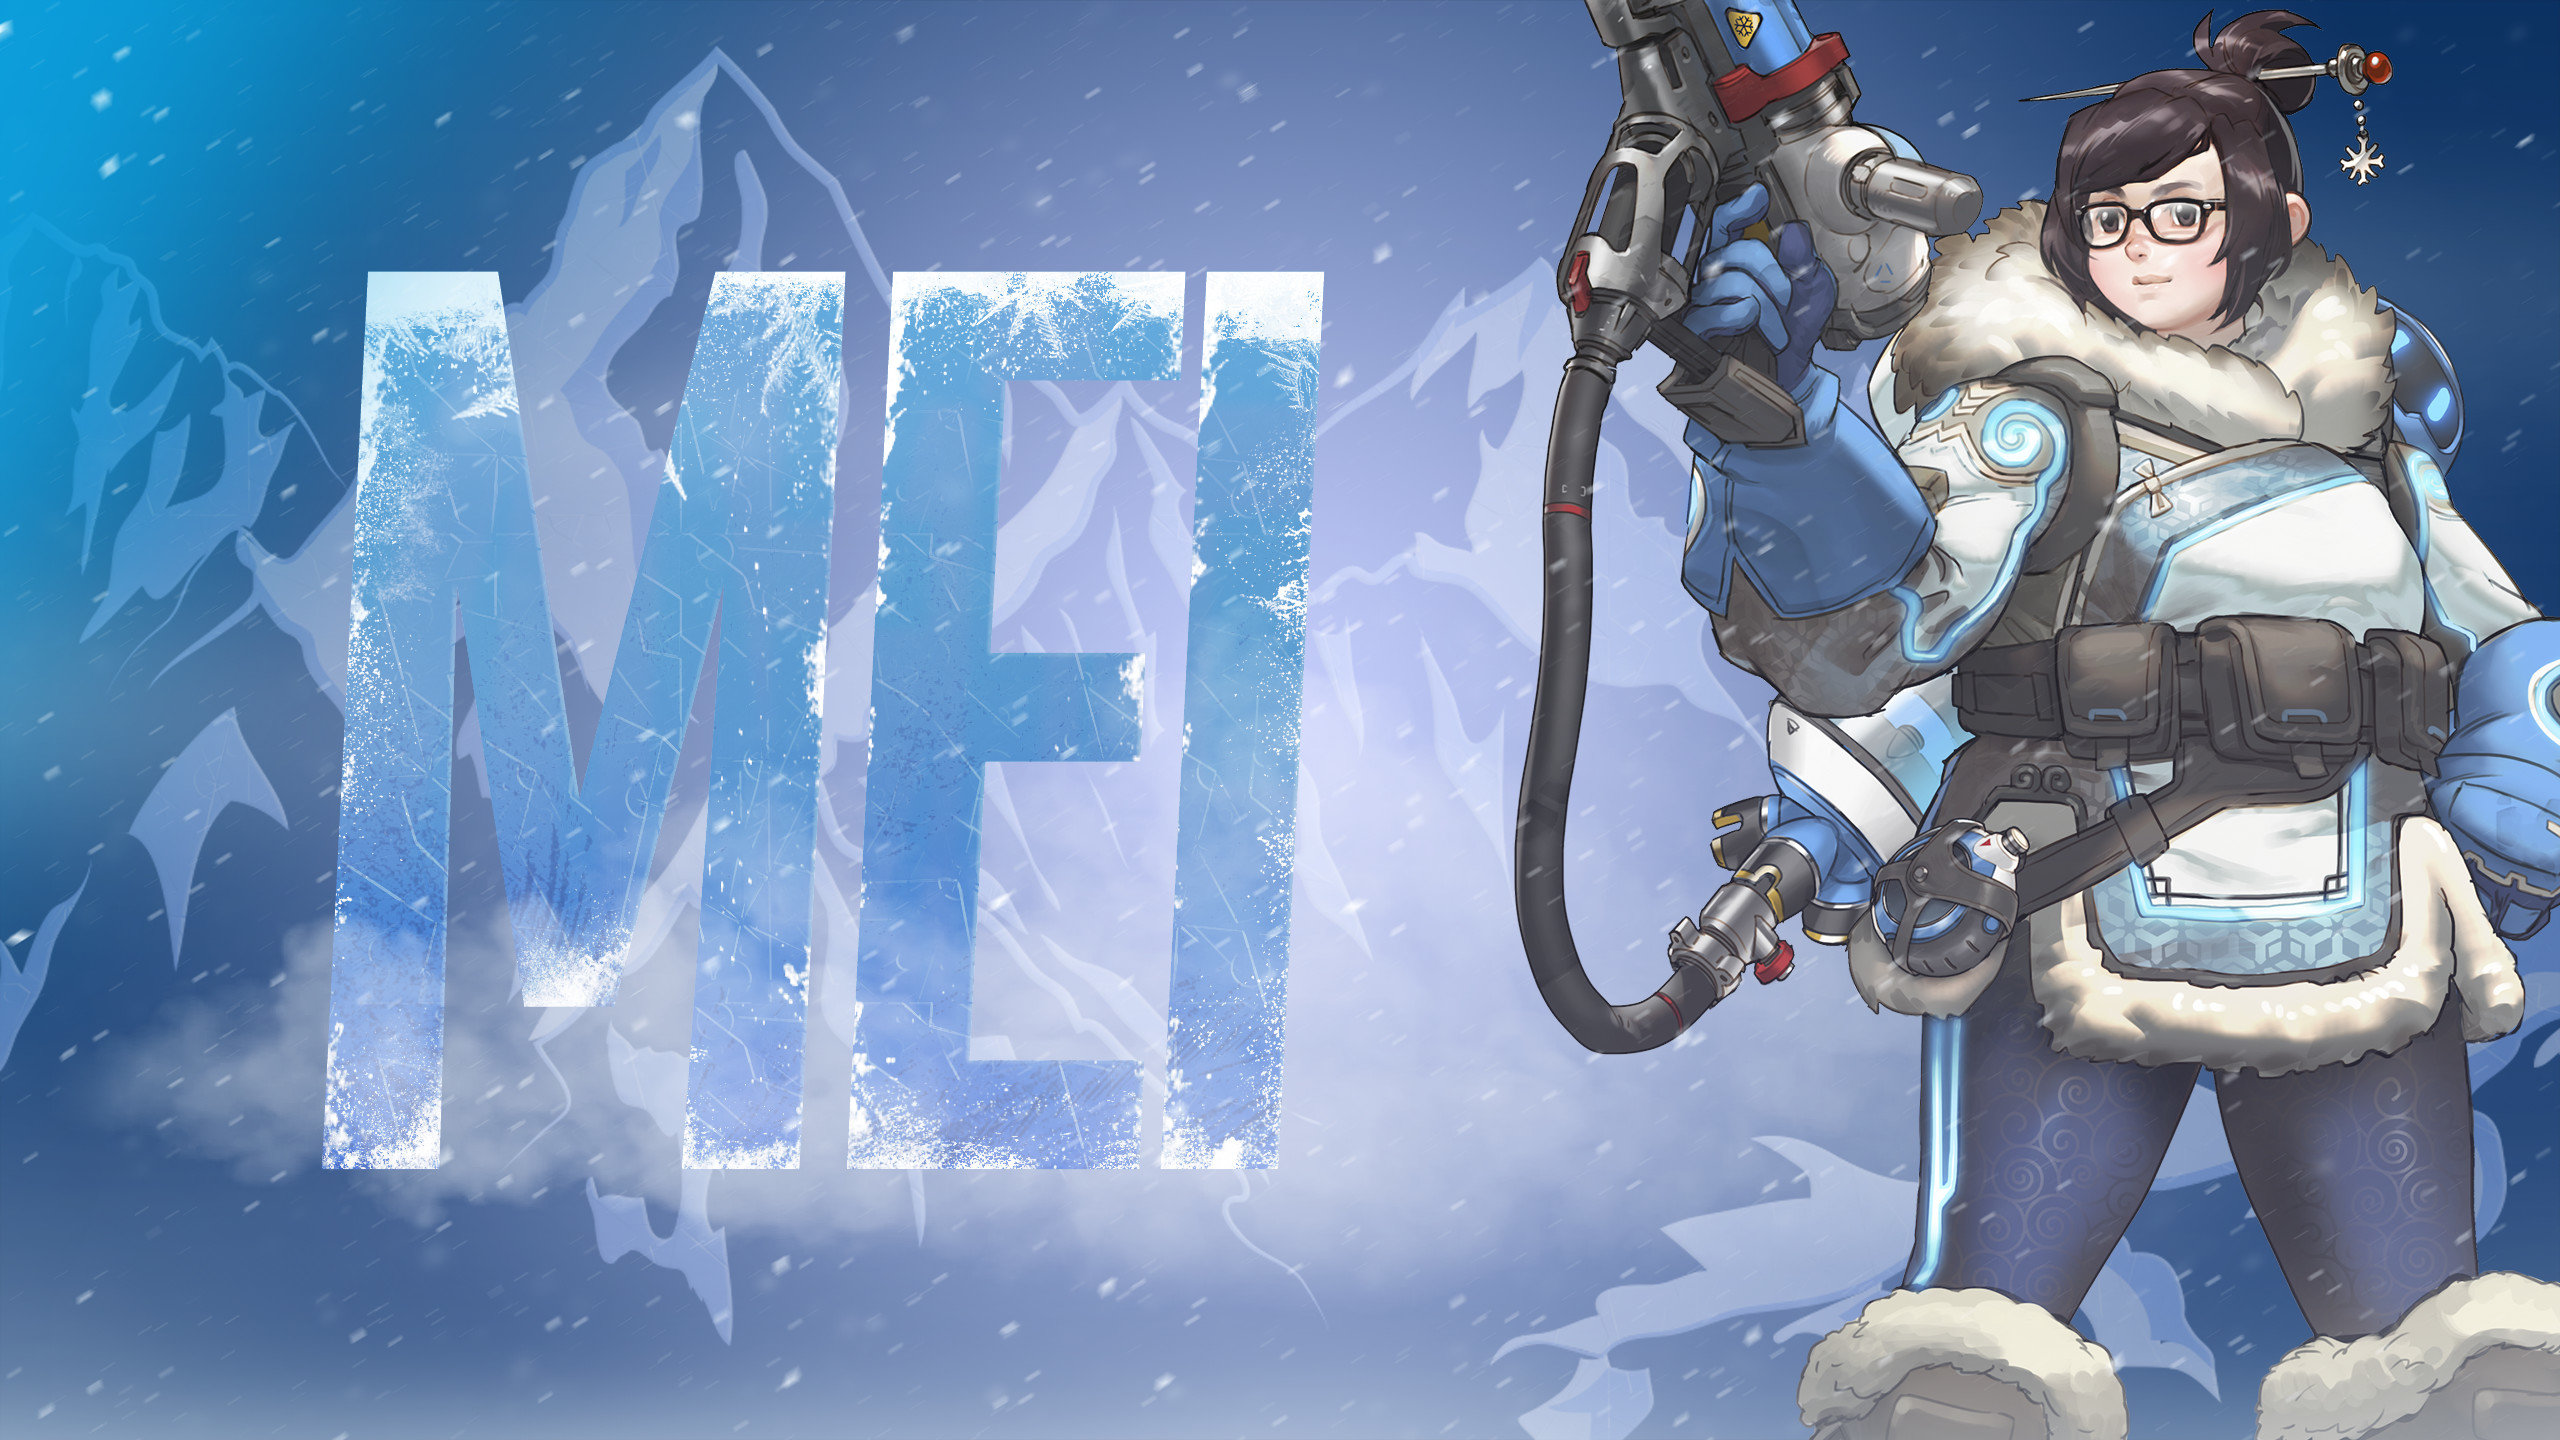 high resolution mei (overwatch) hd 2560x1440 wallpaper id:170566 for